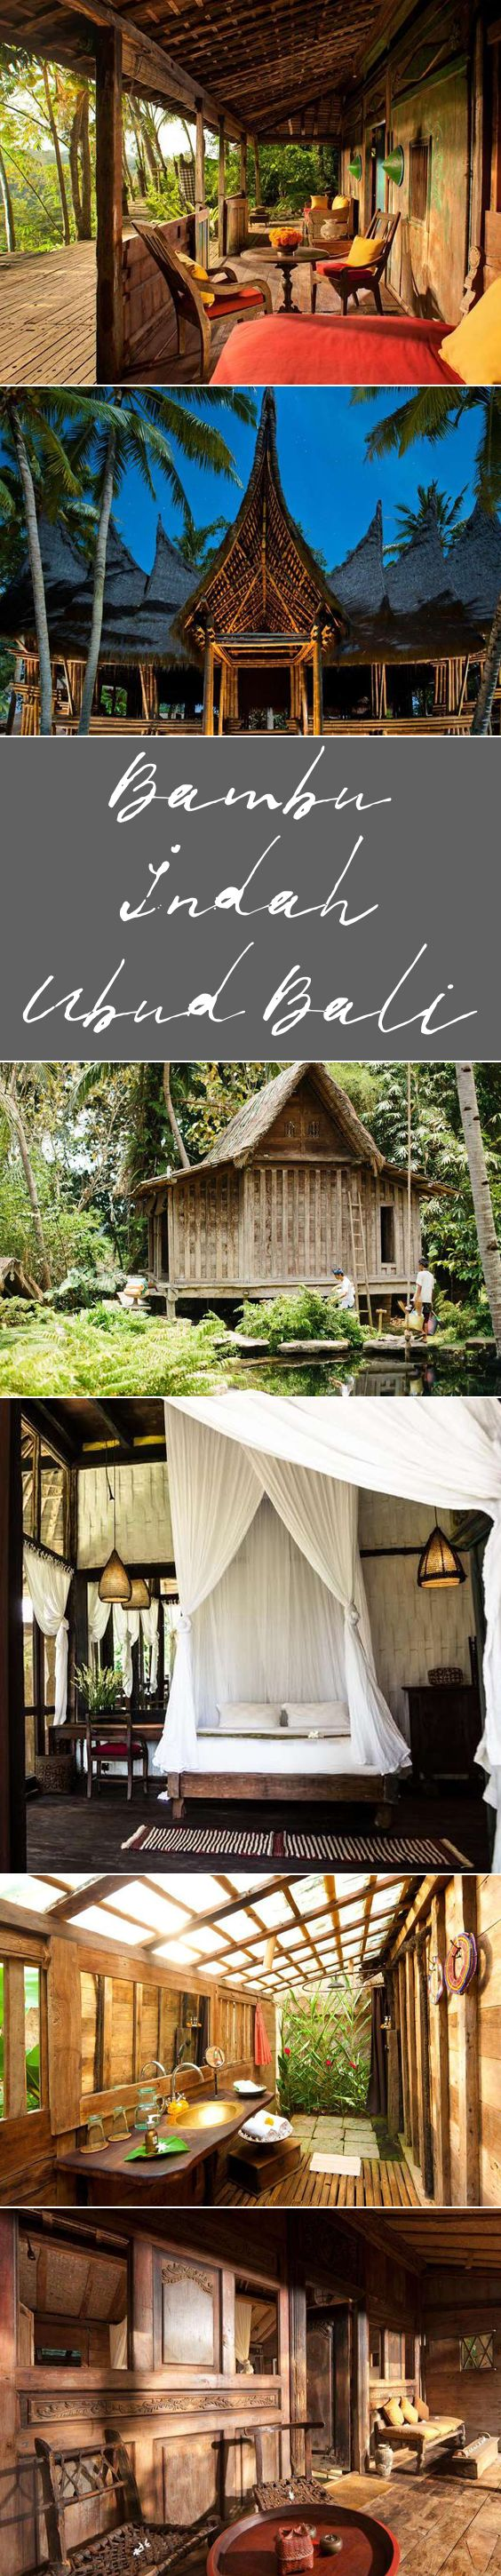 best 25+ ubud hotels ideas that you will like on pinterest